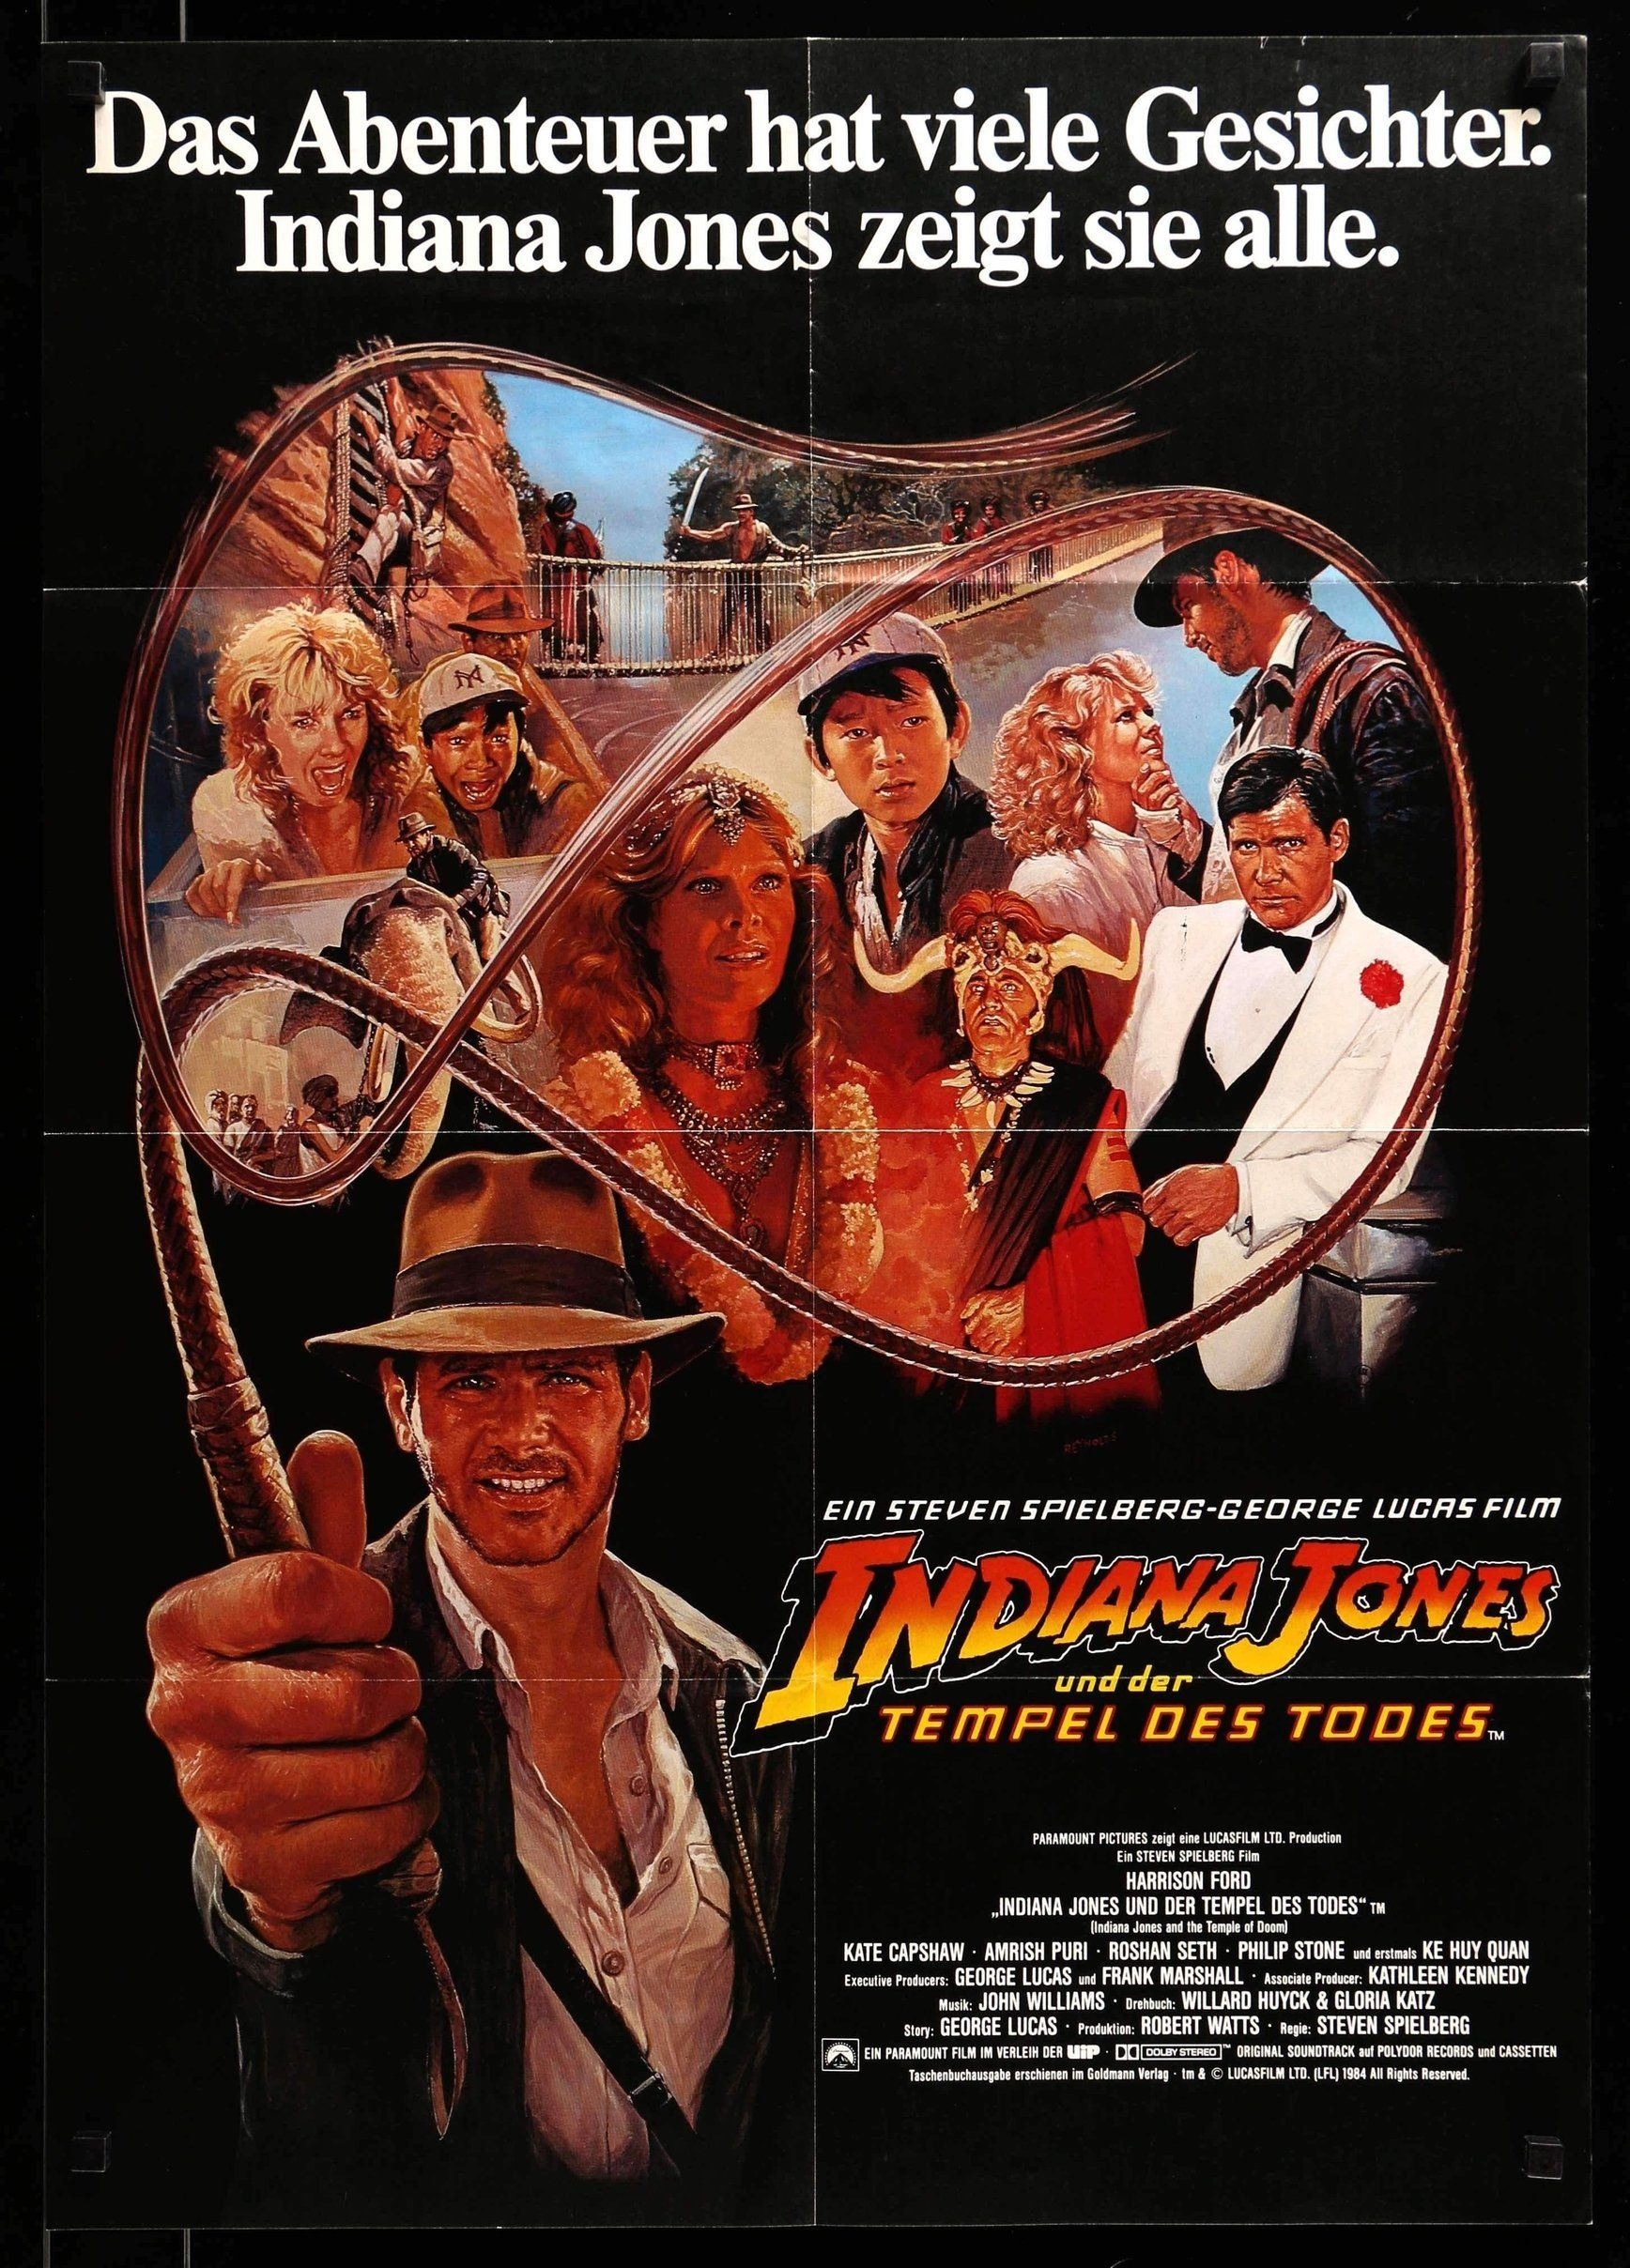 Indiana Jones And The Temple Of Doom 1984 Indiana Jones Indiana Jones Films Indiana